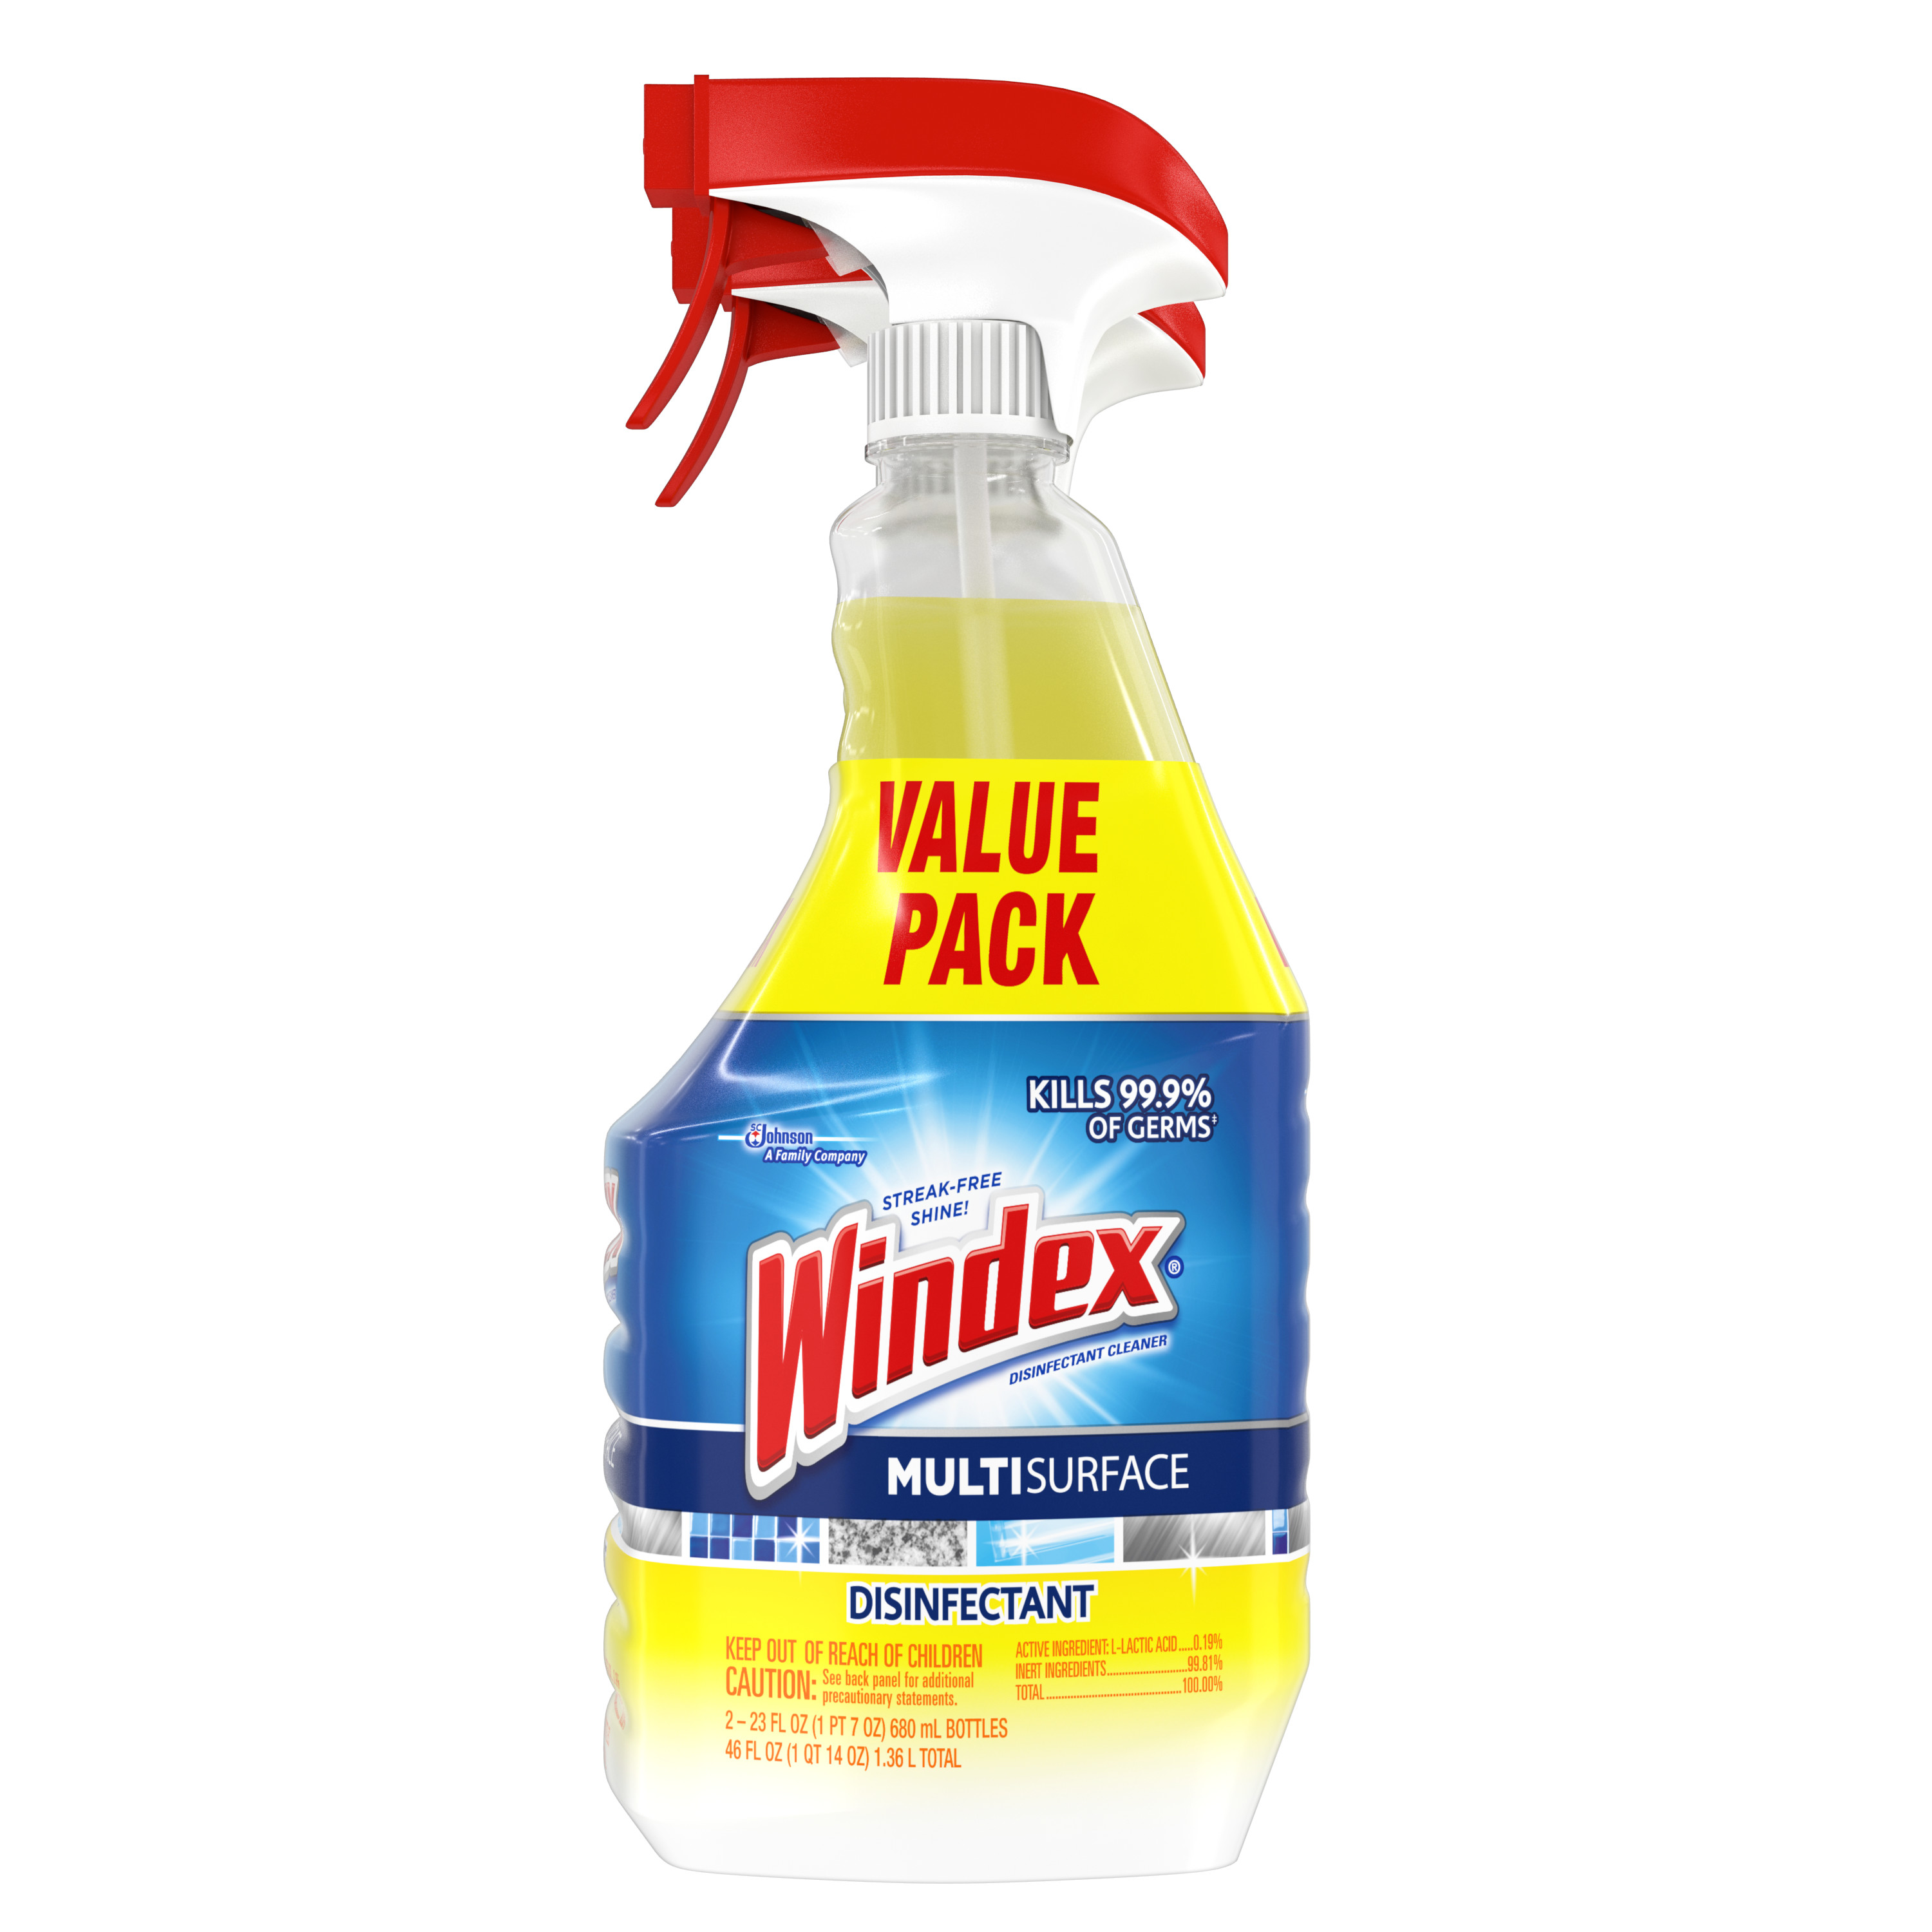 Windex Disinfectant Cleaner Multi-Surface Trigger, 2 count, 23 Fluid Ounces